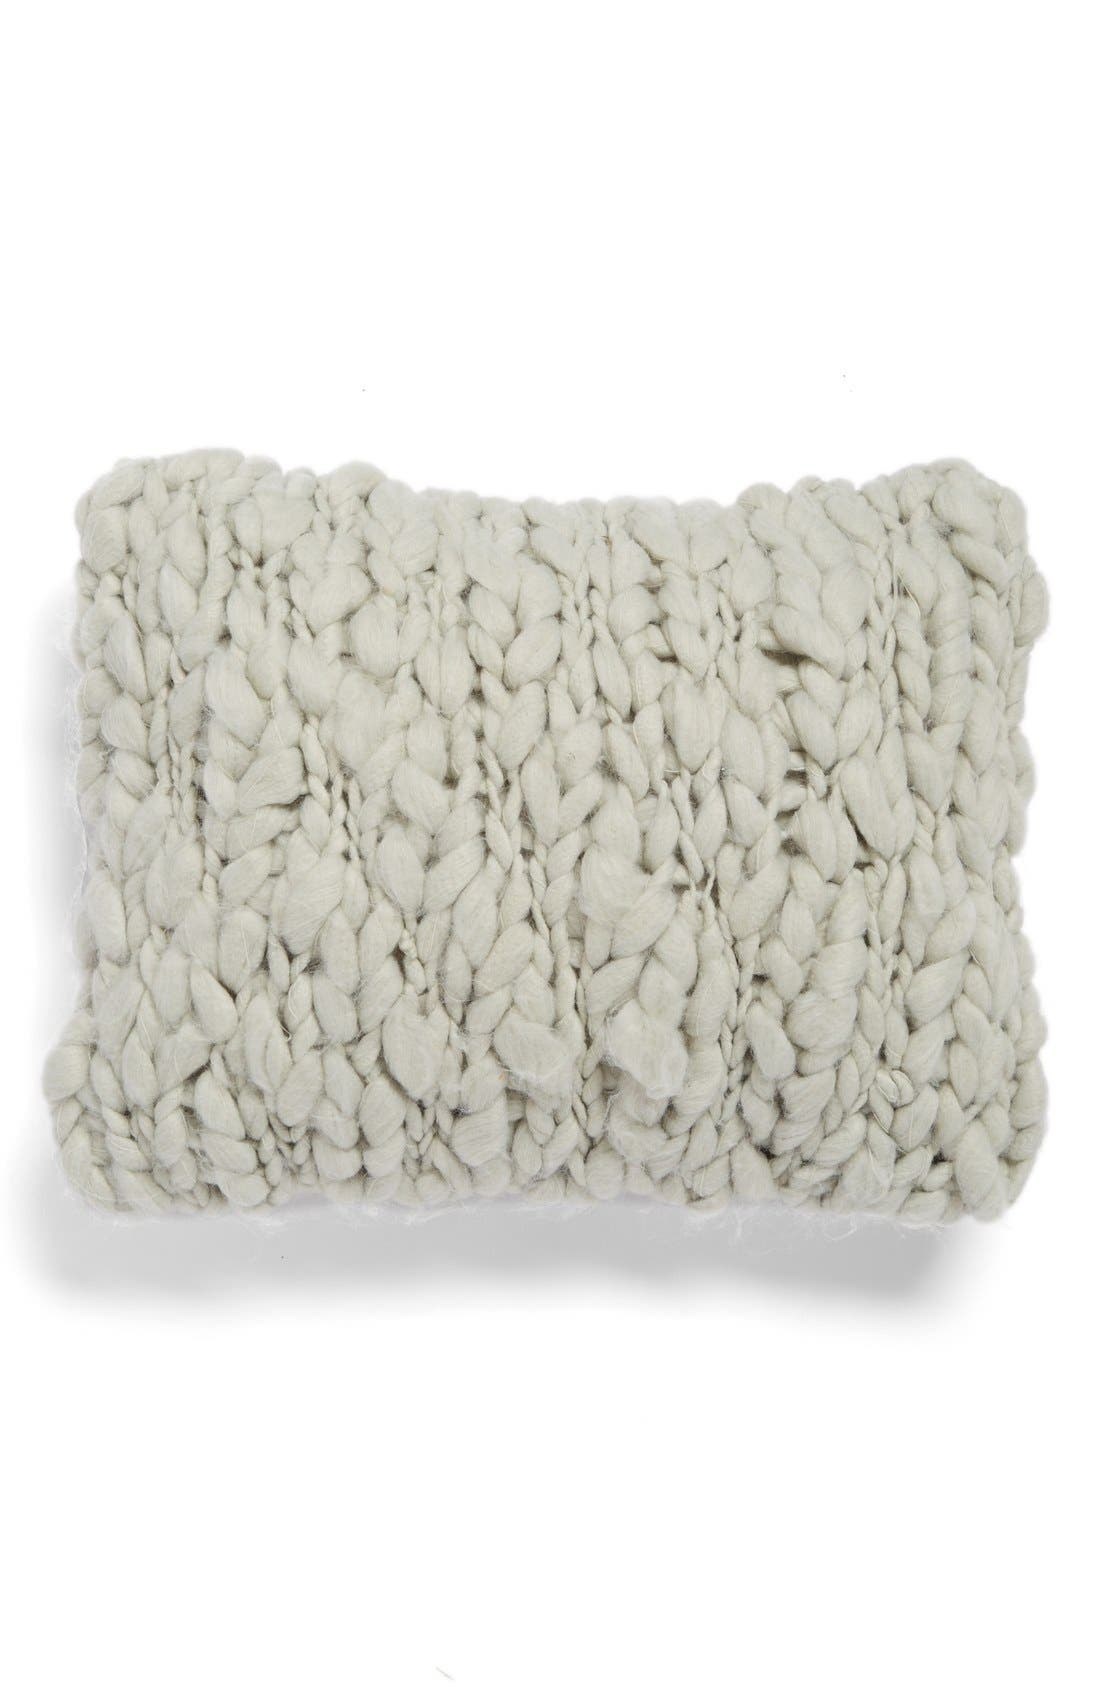 Alternate Image 1 Selected - Beekman 1802 'Minetto' Knit Pillow